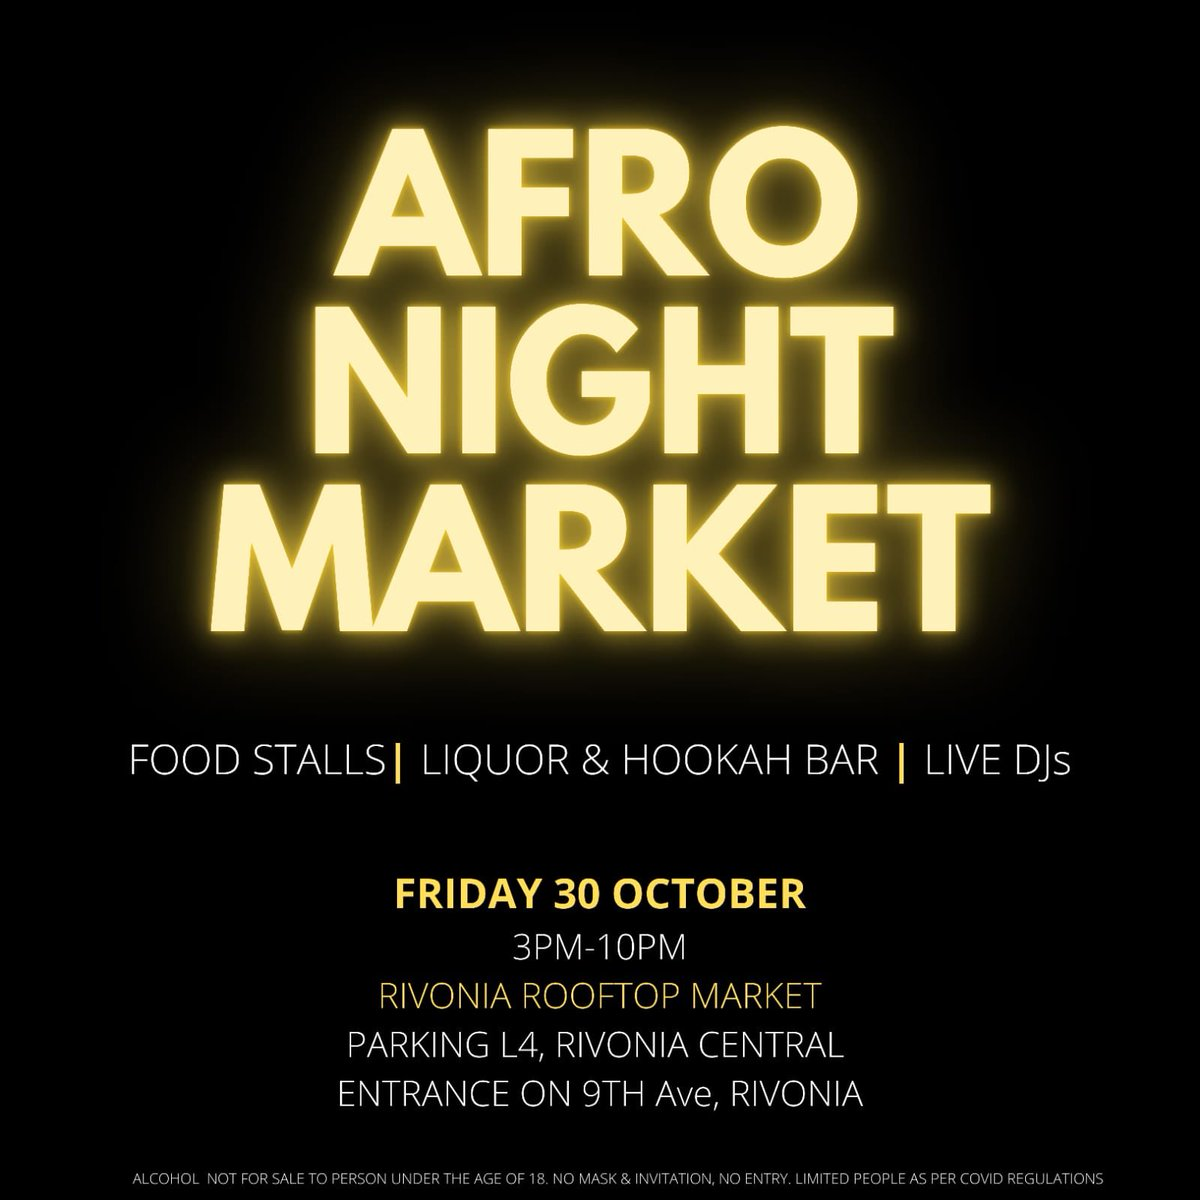 Don't  miss out Afro Night Market @rivrooftopmrkt please Save the date  #RivoniaRooftop https://t.co/Hu66SNzggW